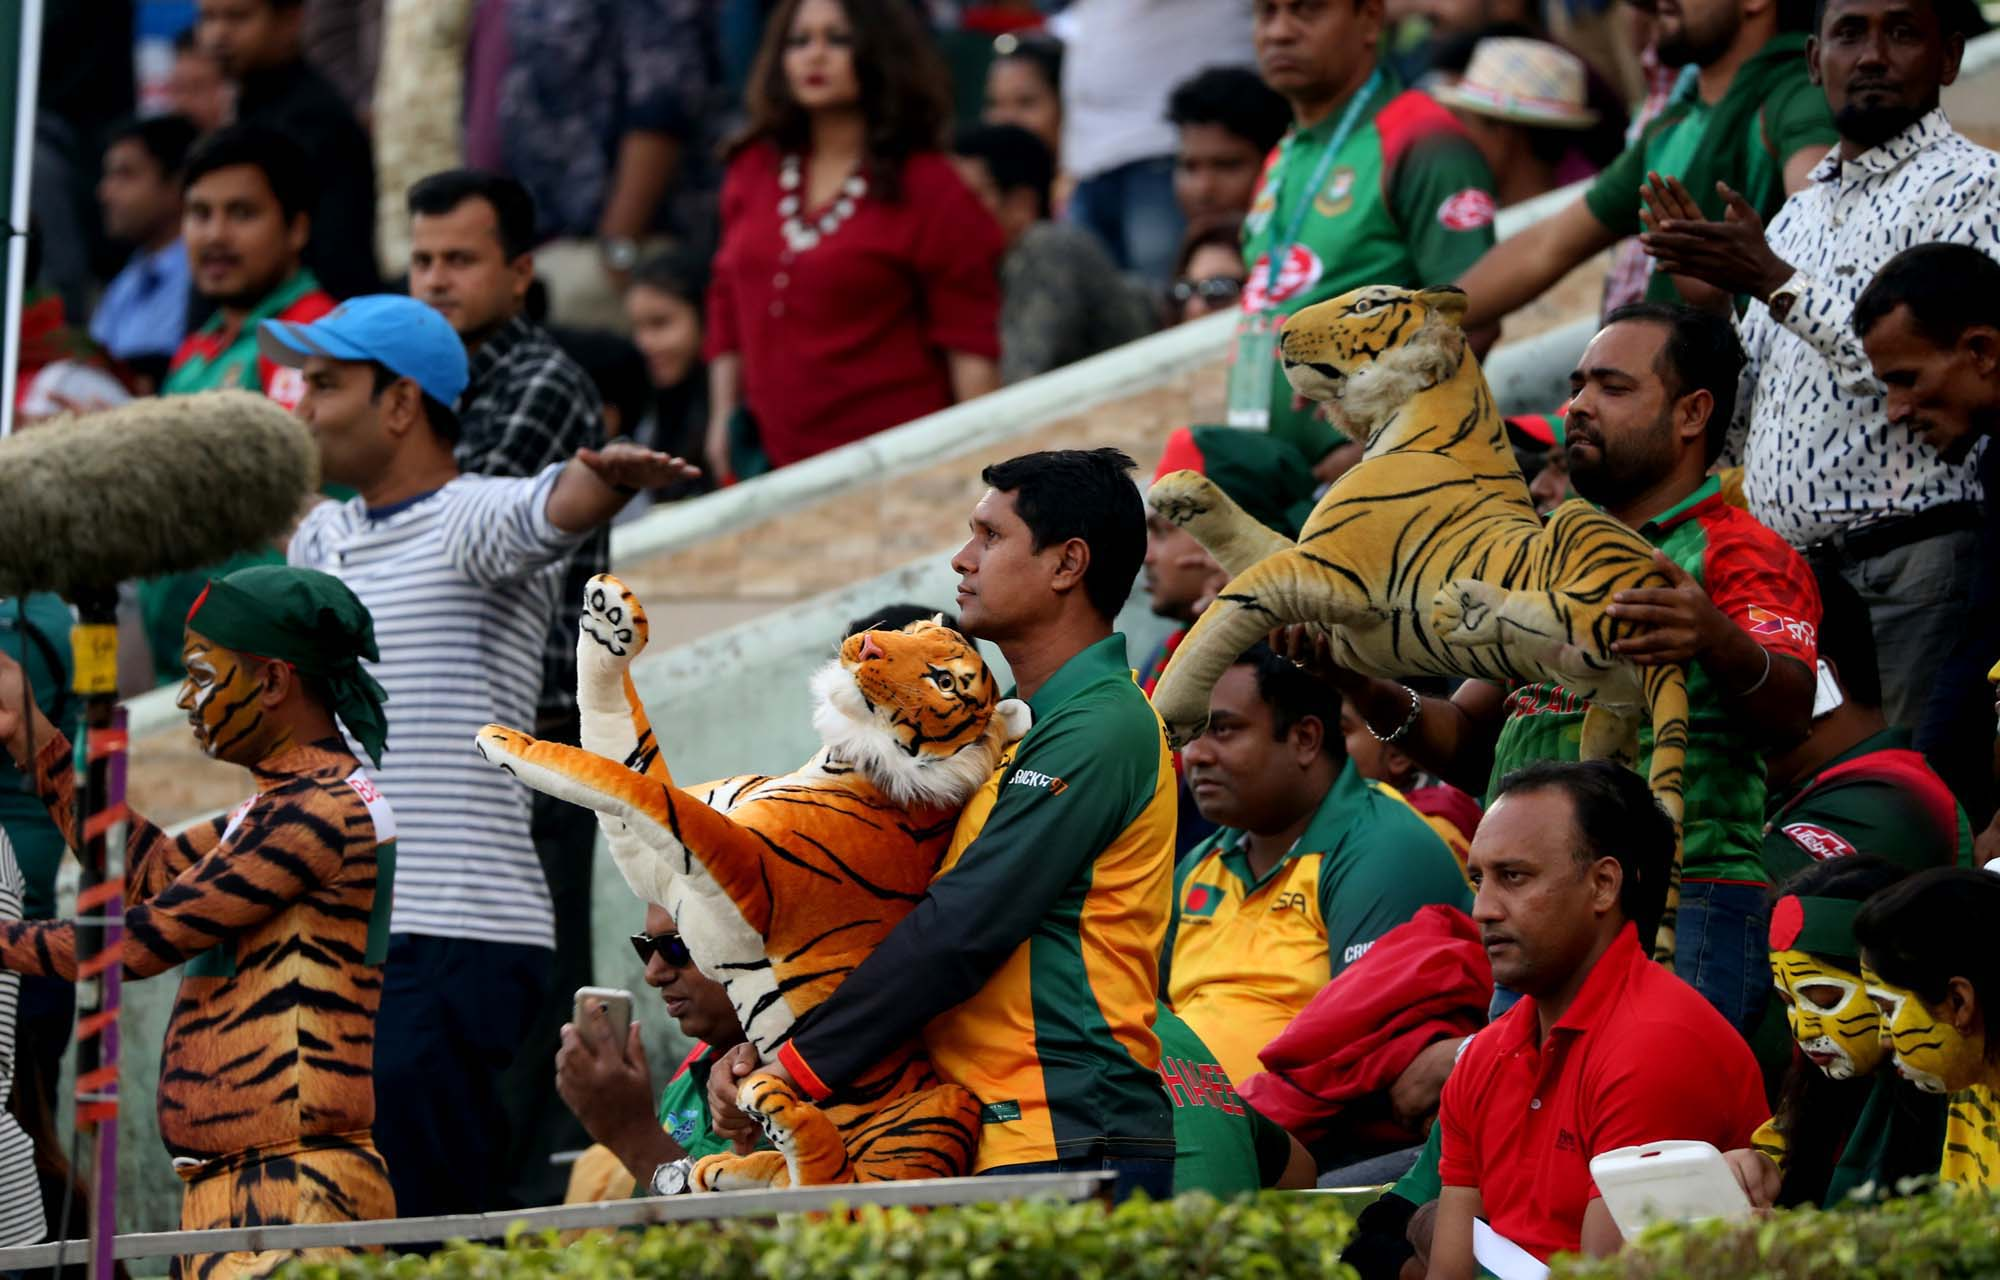 A good number of spectators arrived at the galleries to watch the first One Day International match between Bangladesh and West Indies at the Sher-e-Bangla National Cricket Stadium in the city's Mirpur on Sunday.